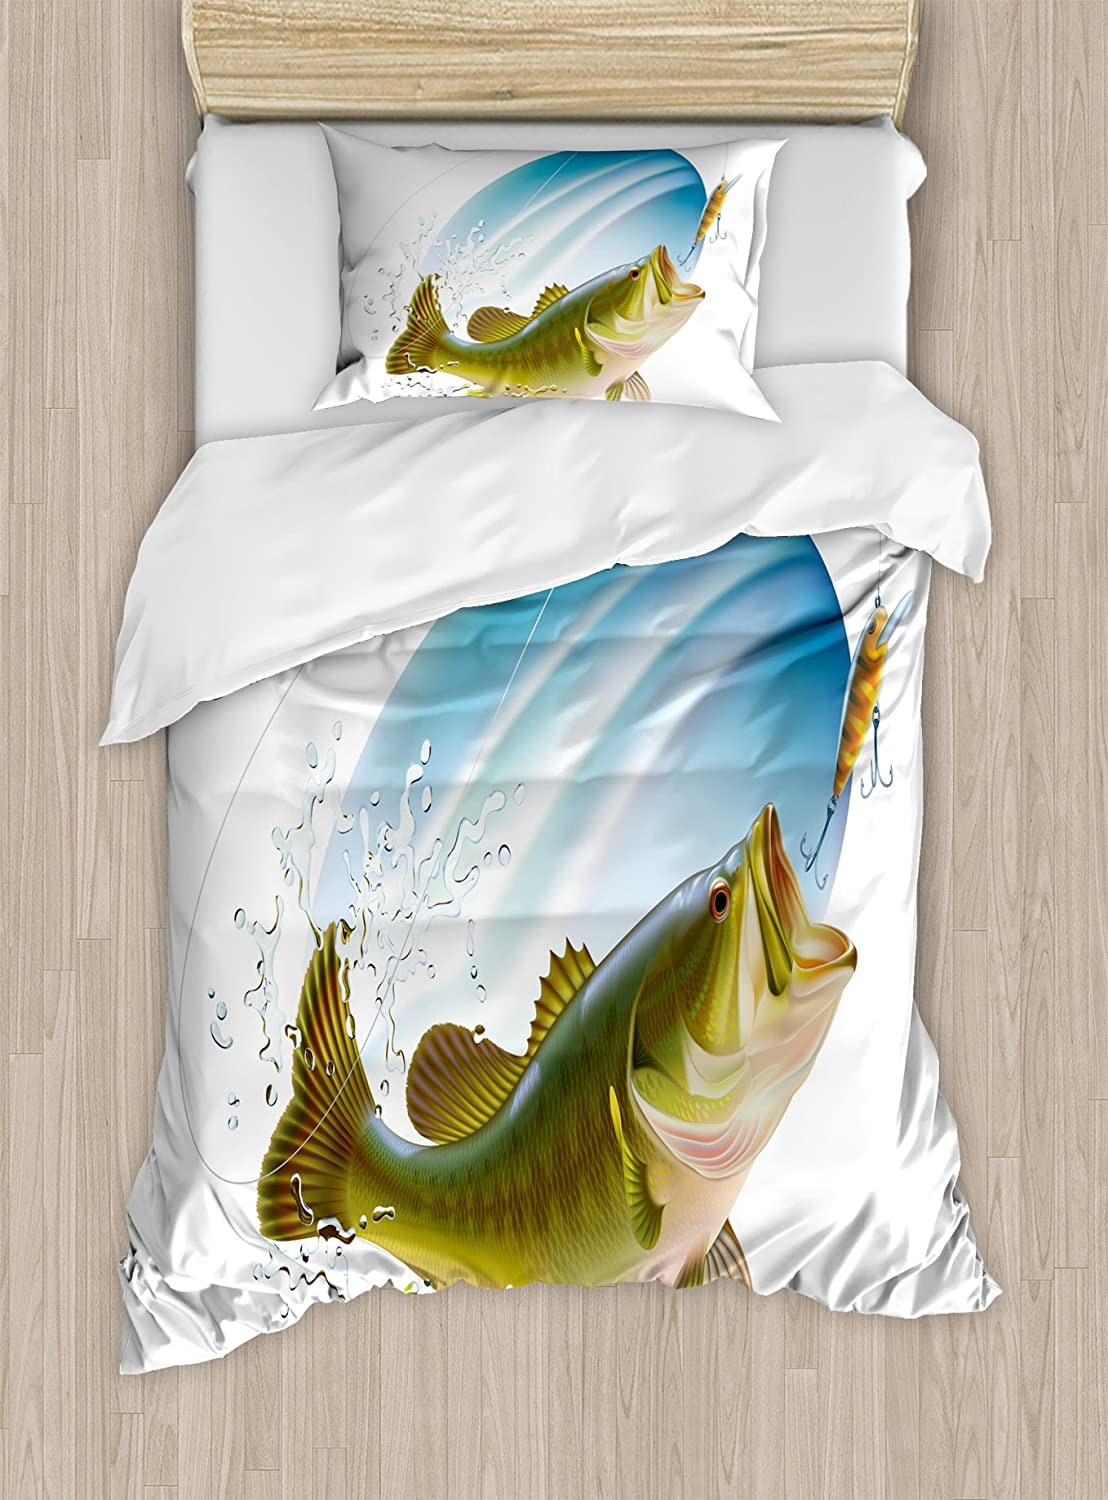 Ambesonne Fishing Duvet Cover Set, Largemouth Sea Bass Catching a Bite in Water Spray Motion Splashing Wild Image, Decorative 2 Piece Bedding Set with 1 Pillow Sham, Twin Size, Green Blue